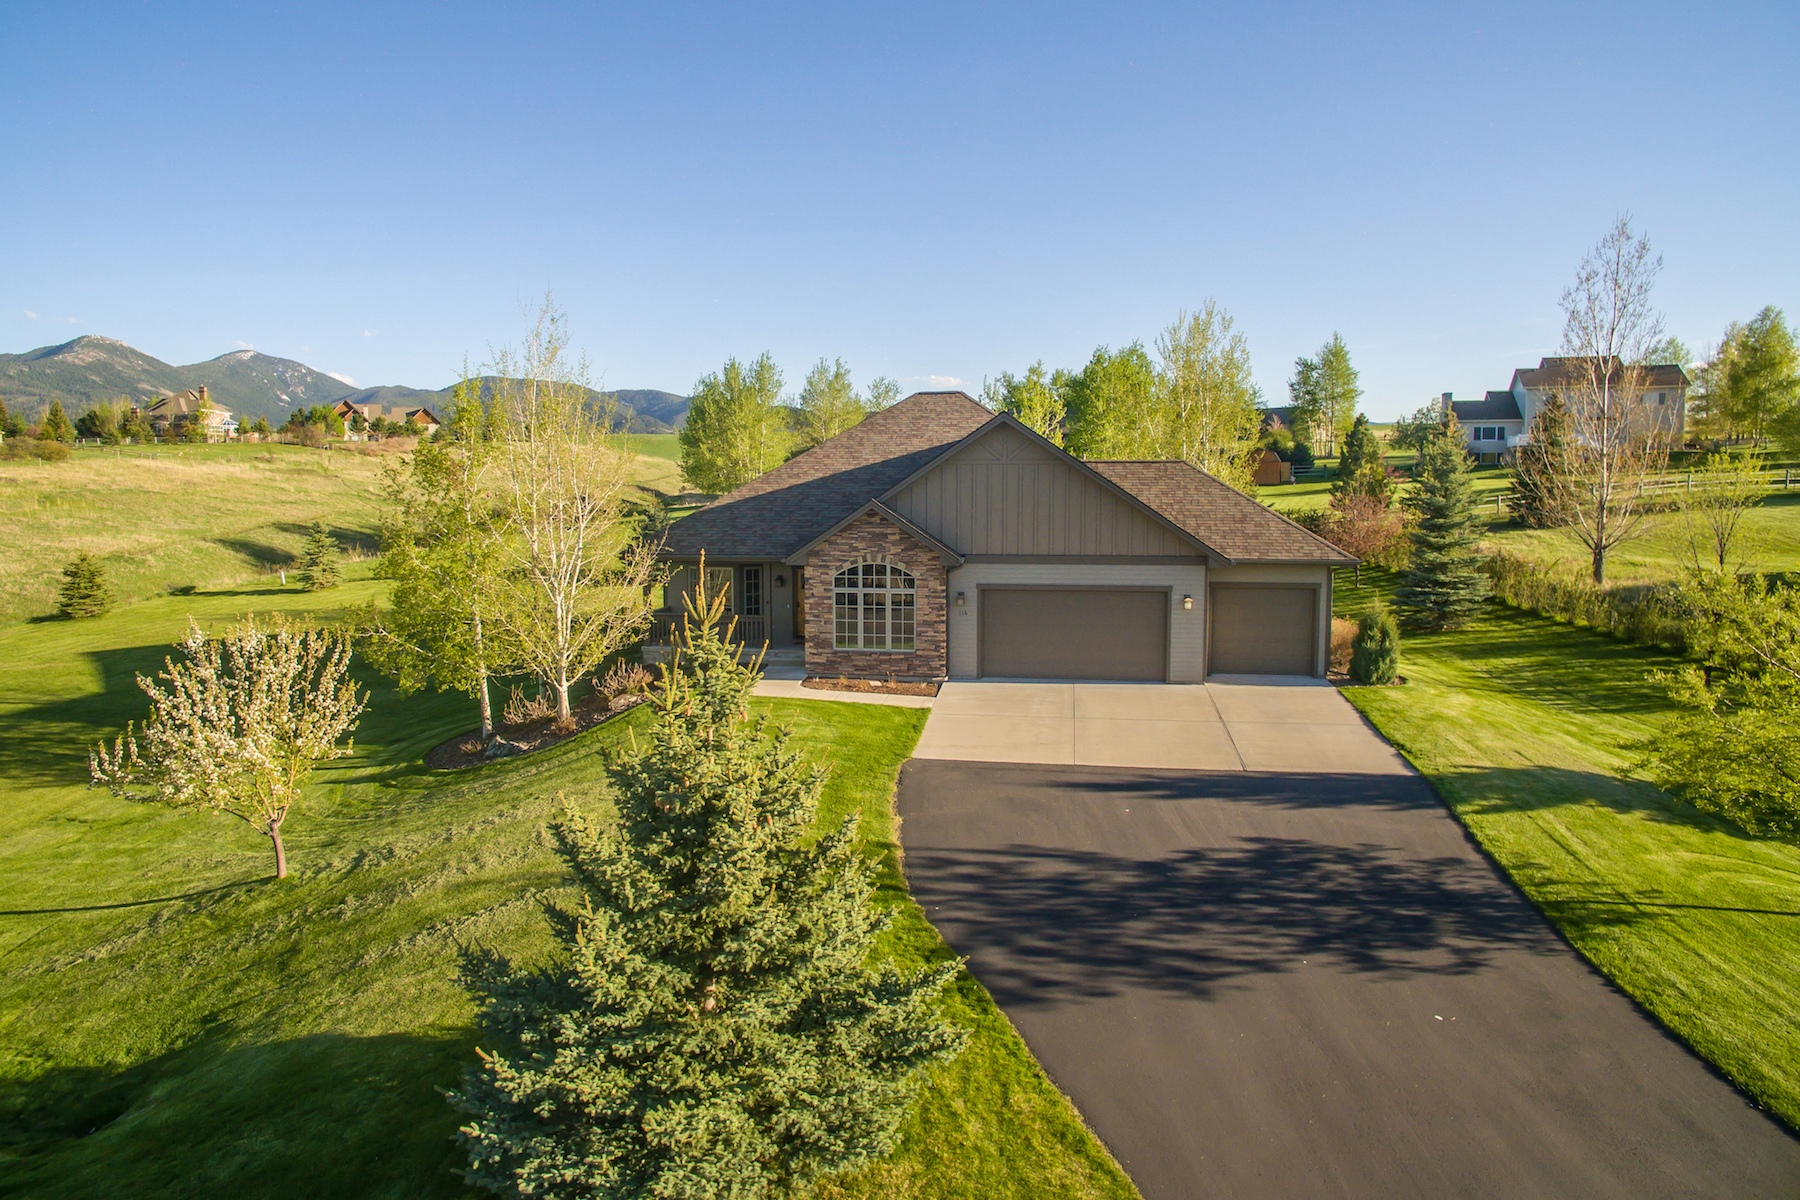 Single Family Home for Sale at 116 Cobalt Court, Bozeman, MT Bozeman, Montana 59715 United States